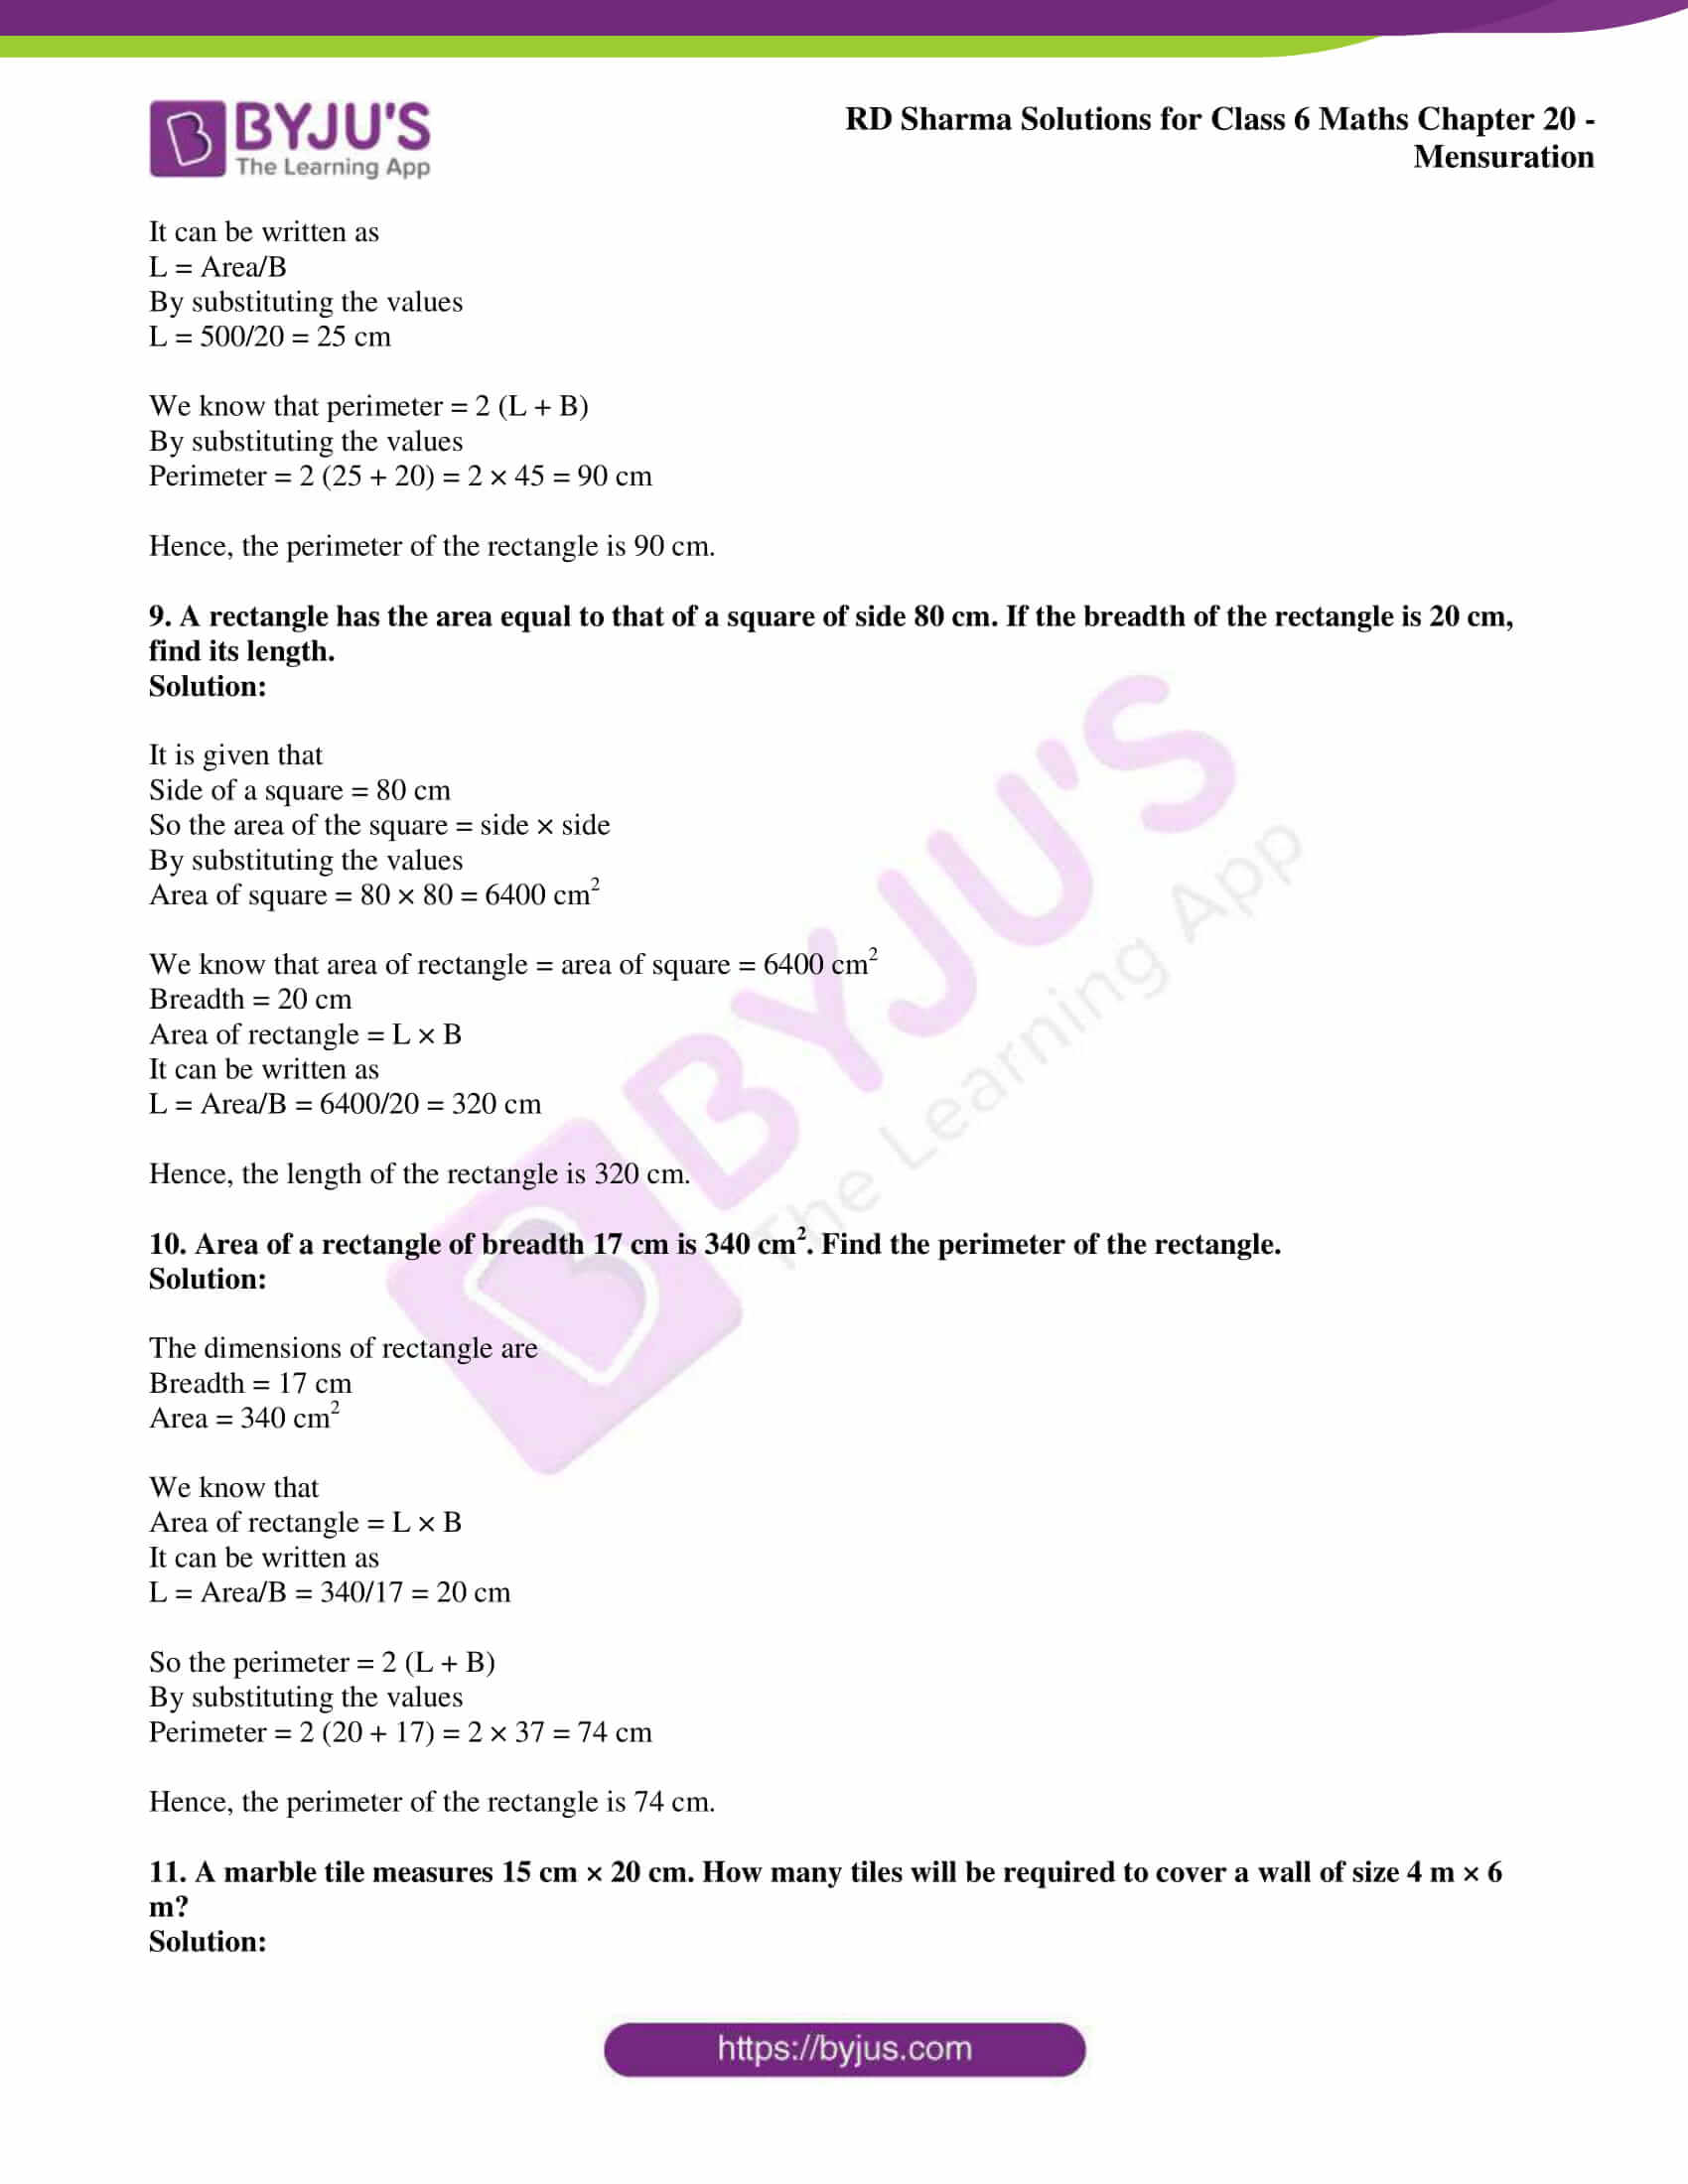 rd sharma solutions nov2020 class 6 maths chapter 20 exercise 4 4